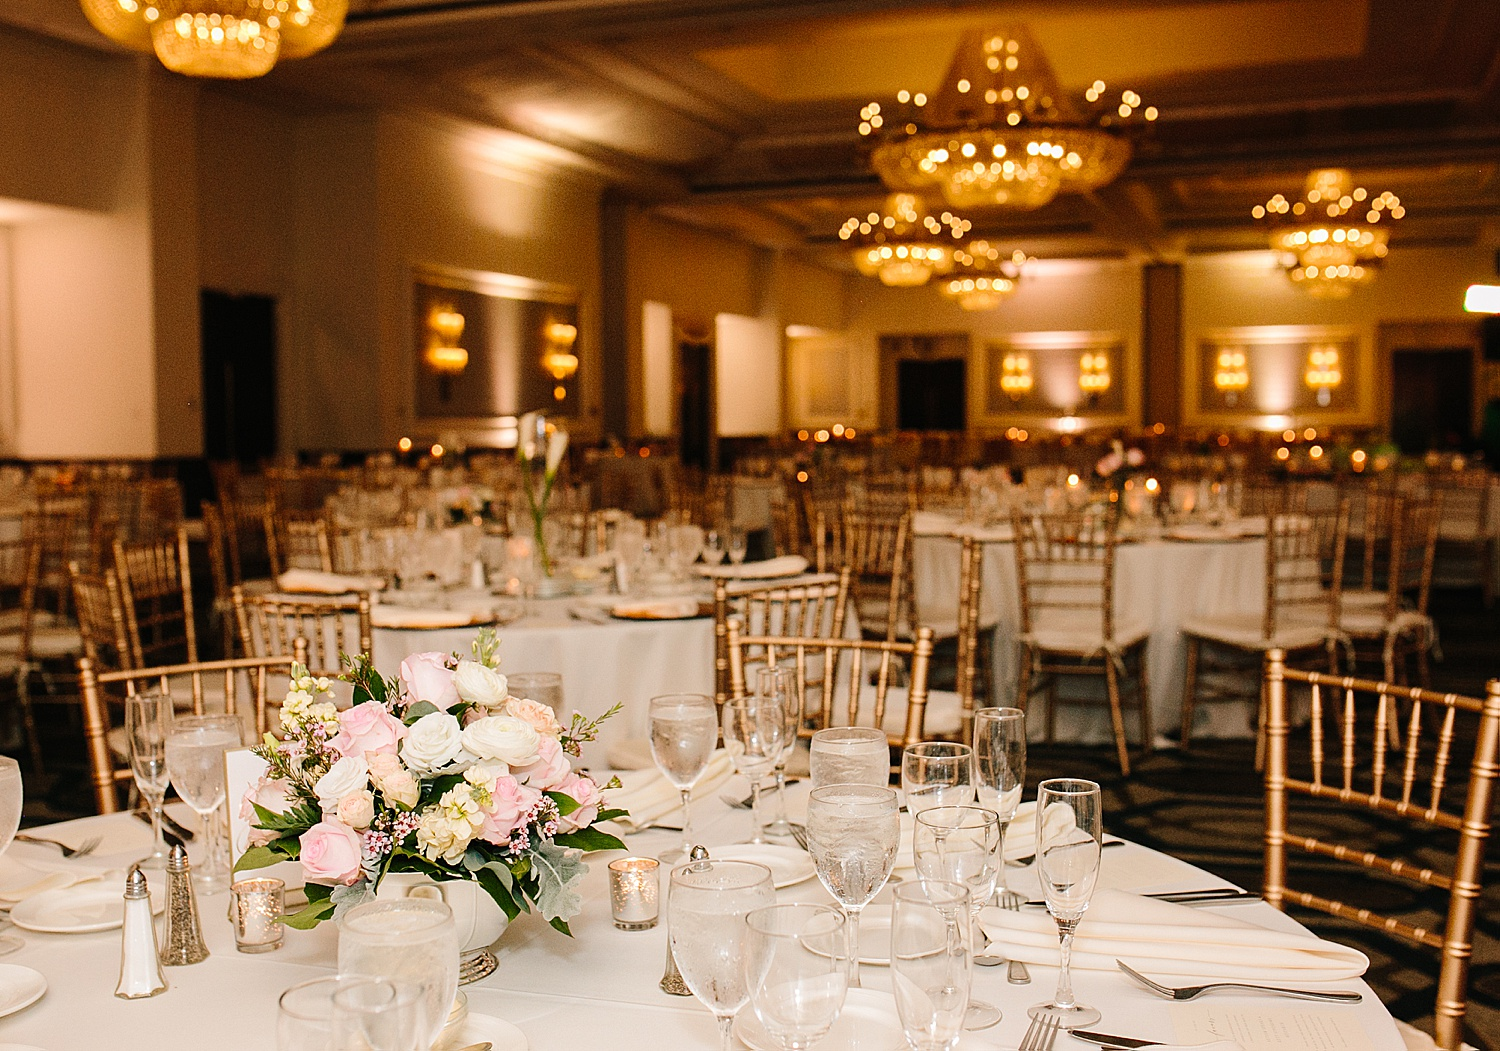 courtneyryan_sheraton_societyhill_philadelphia_merchantsexchange_wedding_image086.jpg